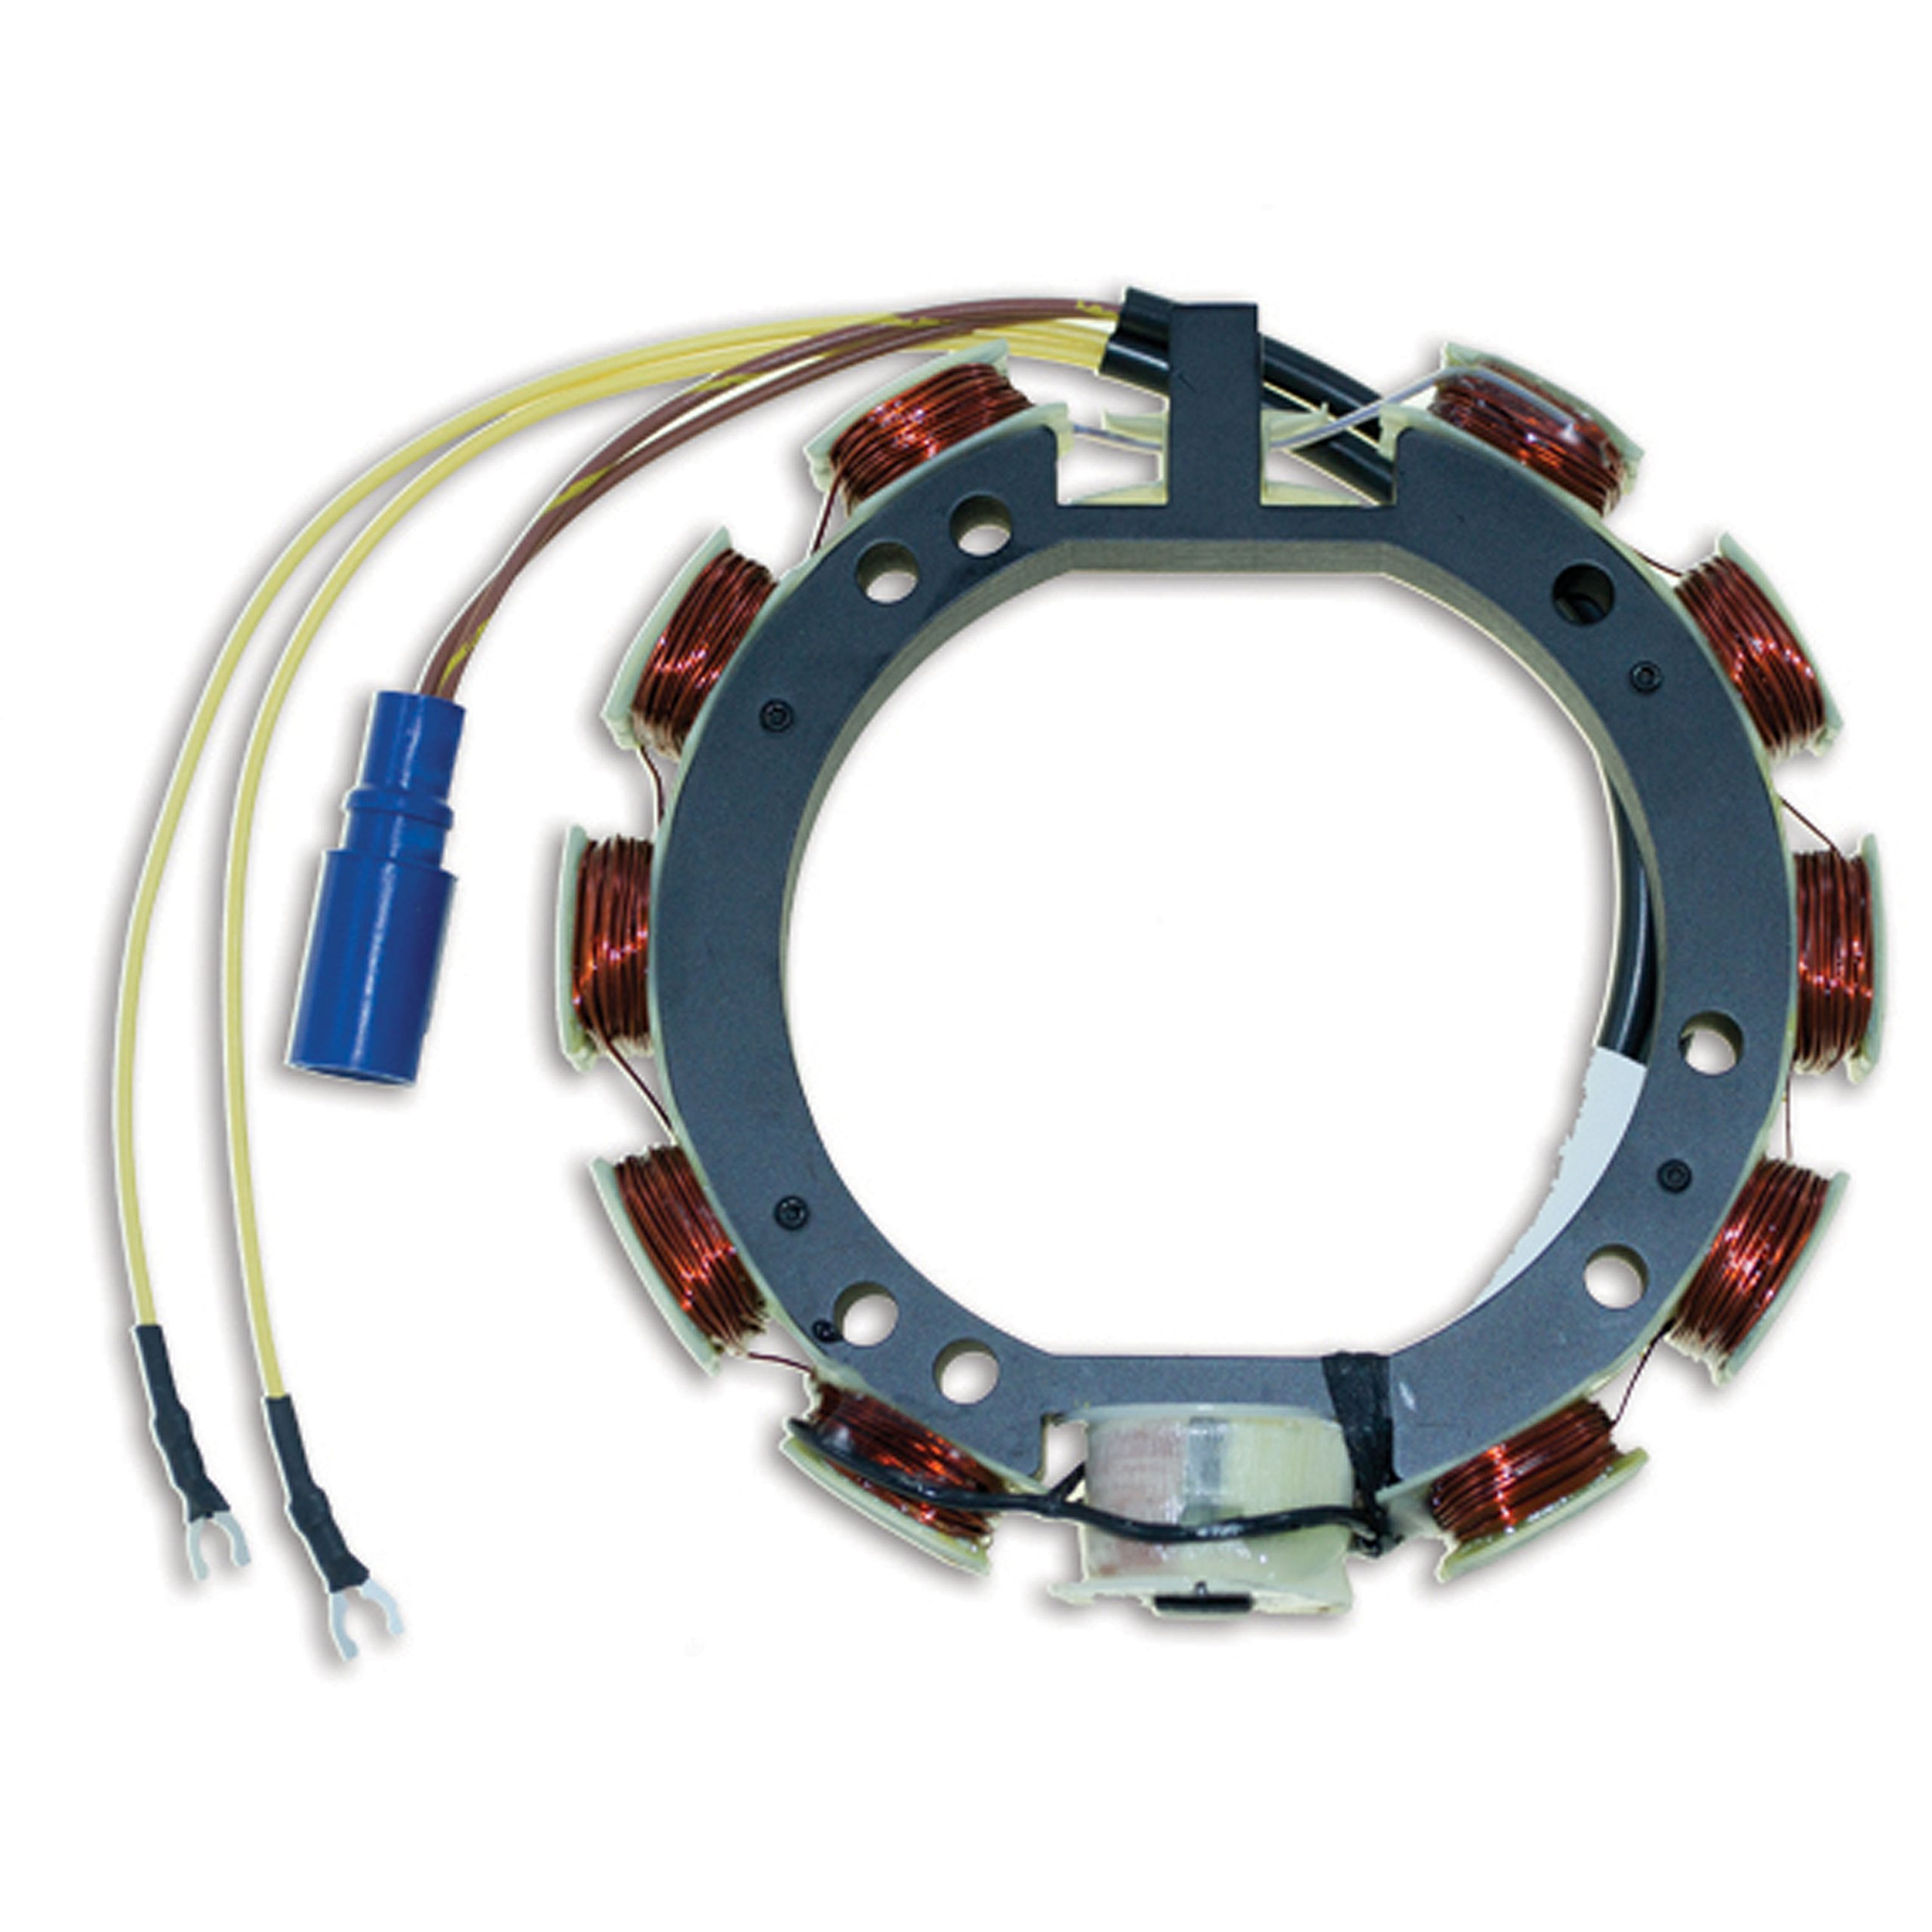 CDI Electronics 173-3536 Johnson/Evinrude Stator - 4 Cyl. 9 Amp (1988-1998) by CDI Electronics